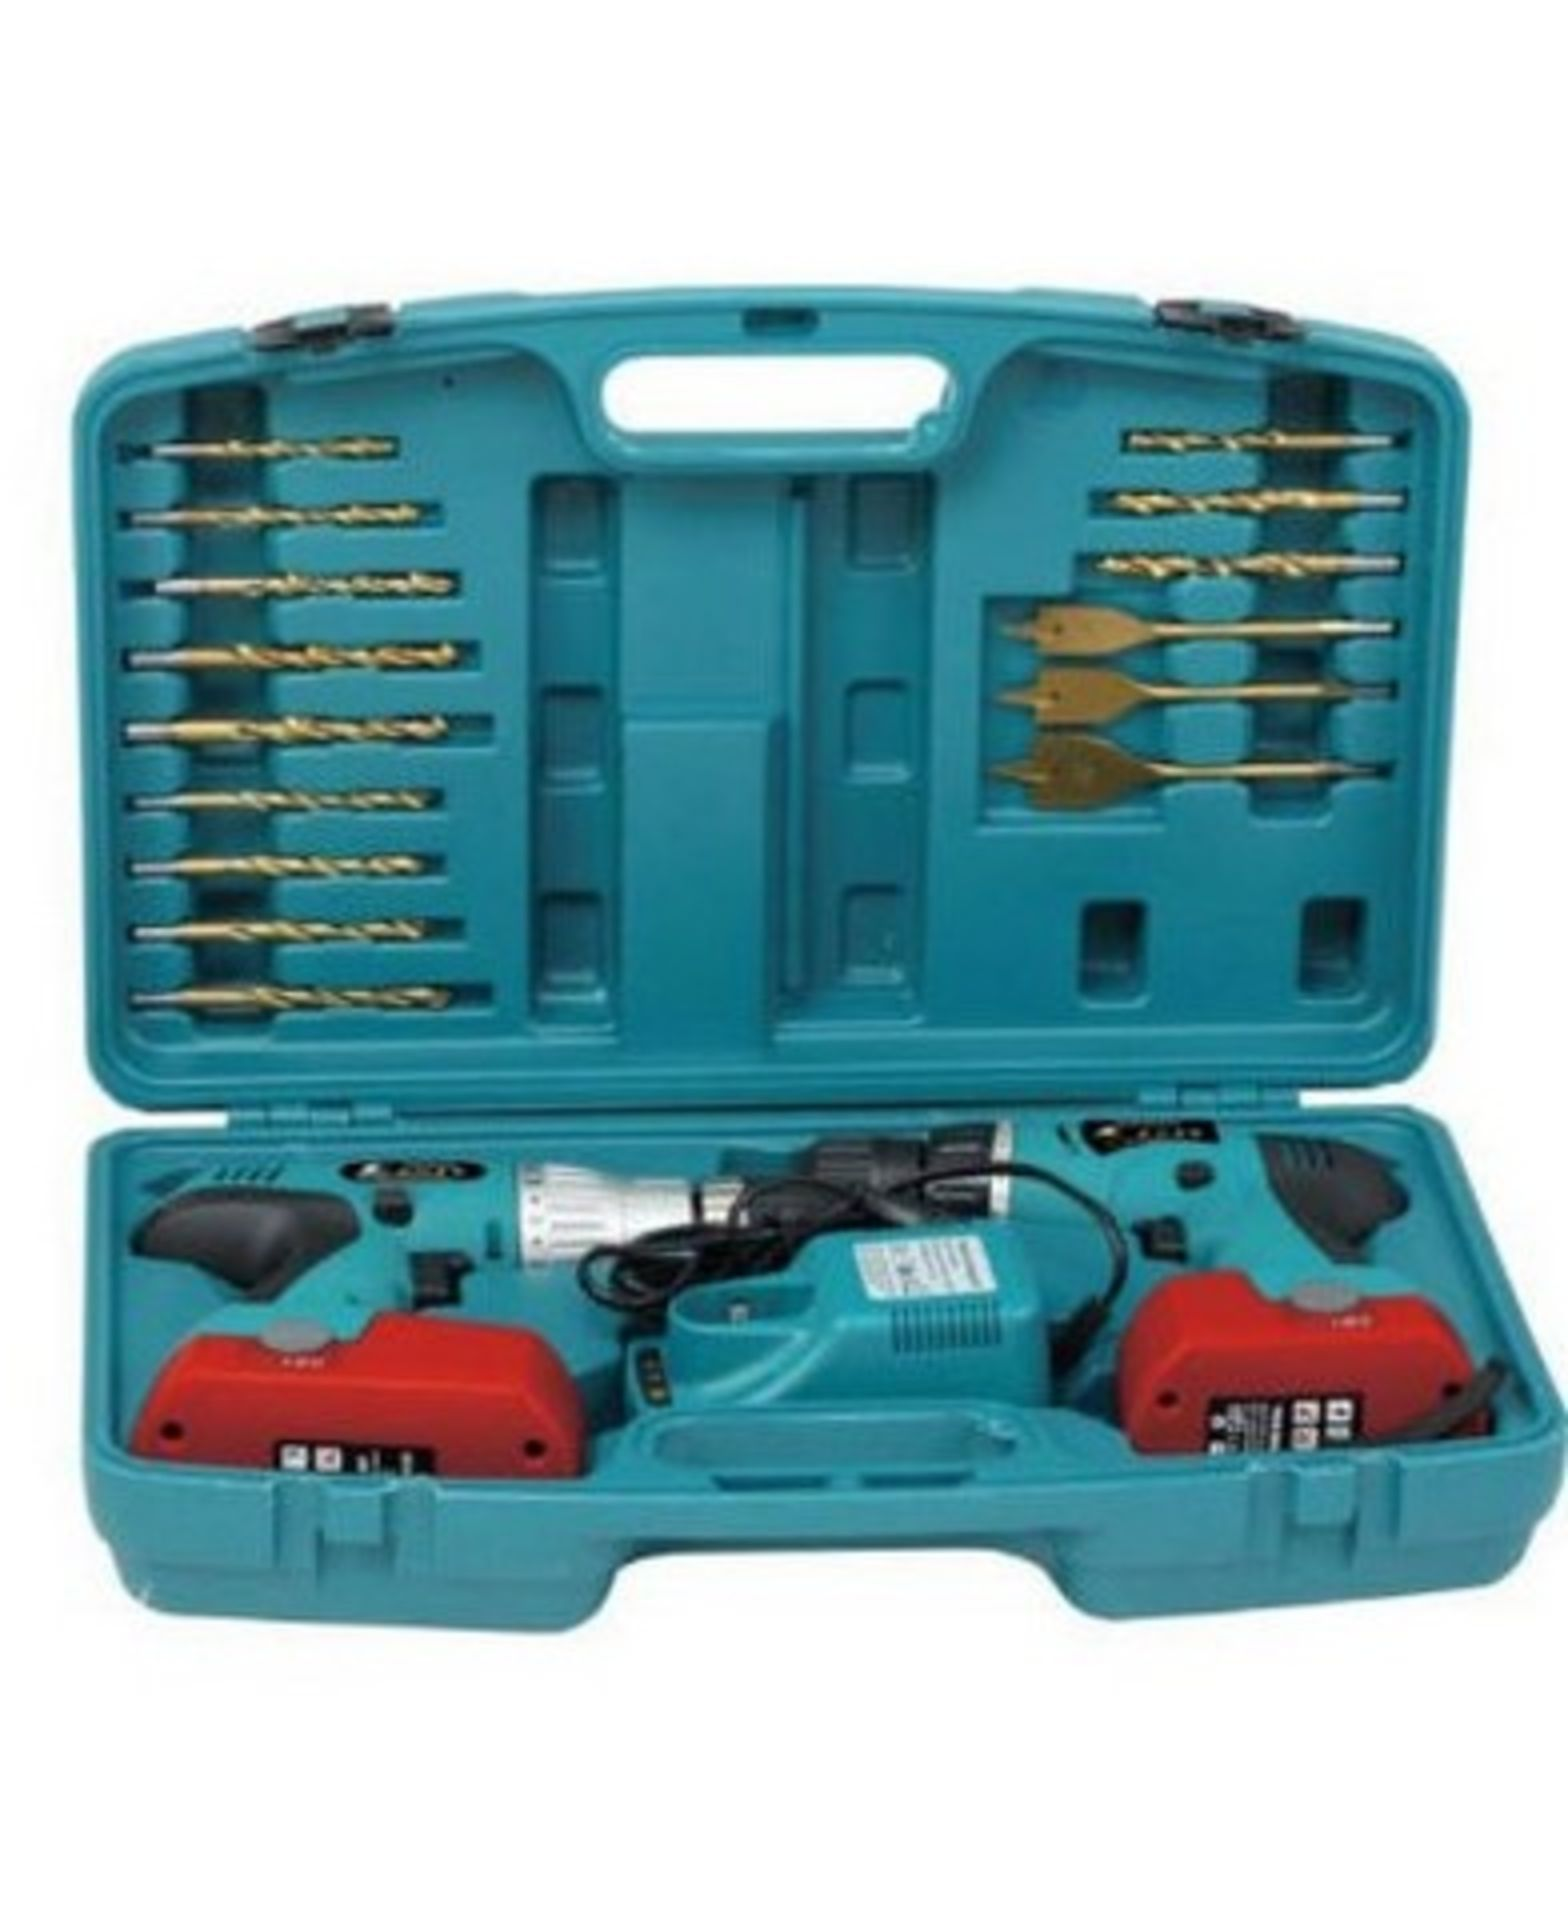 Lot 10055 - + VAT Brand New 18V Twin Drill Kit with Hammer Action and Torque Adjustment - with 15 Asssorted